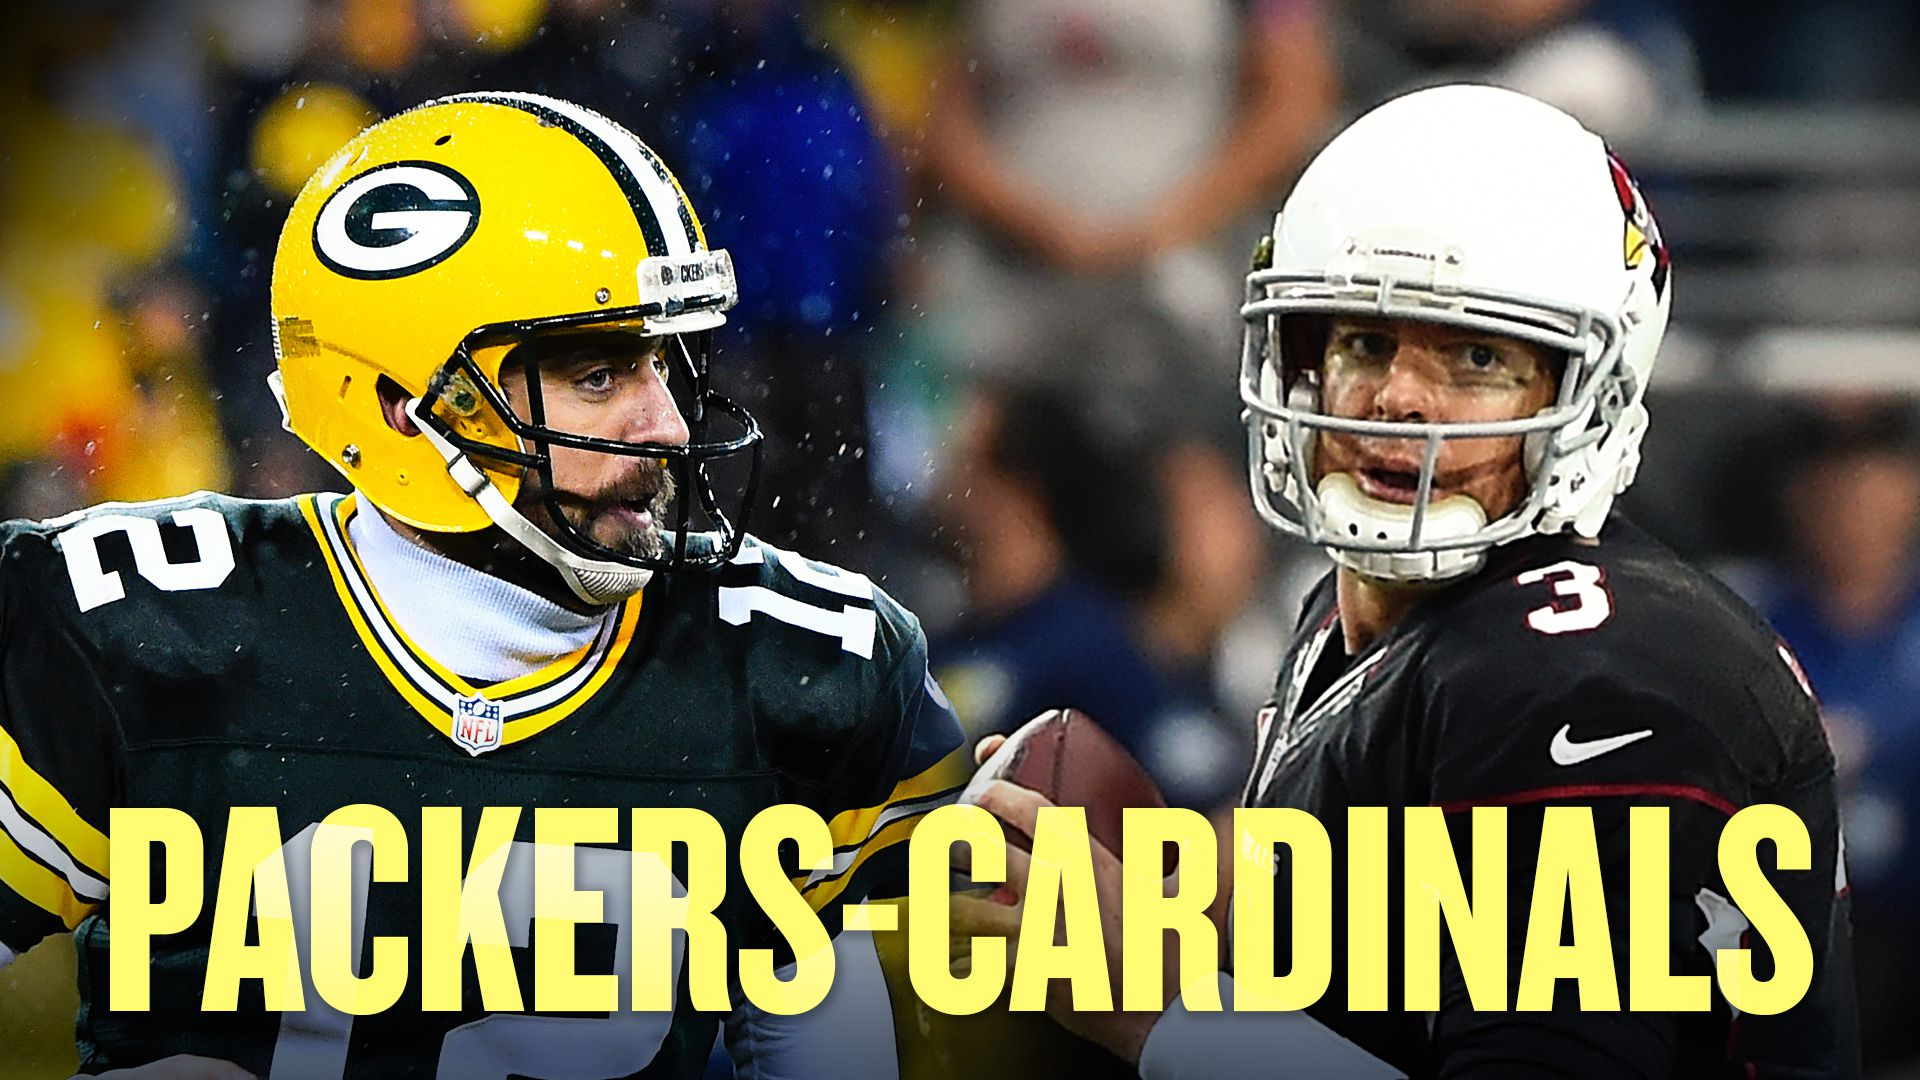 Packers vs. Cardinals preview, 2016 NFL playoffs: Arizona presents tough test for Green Bay's offense